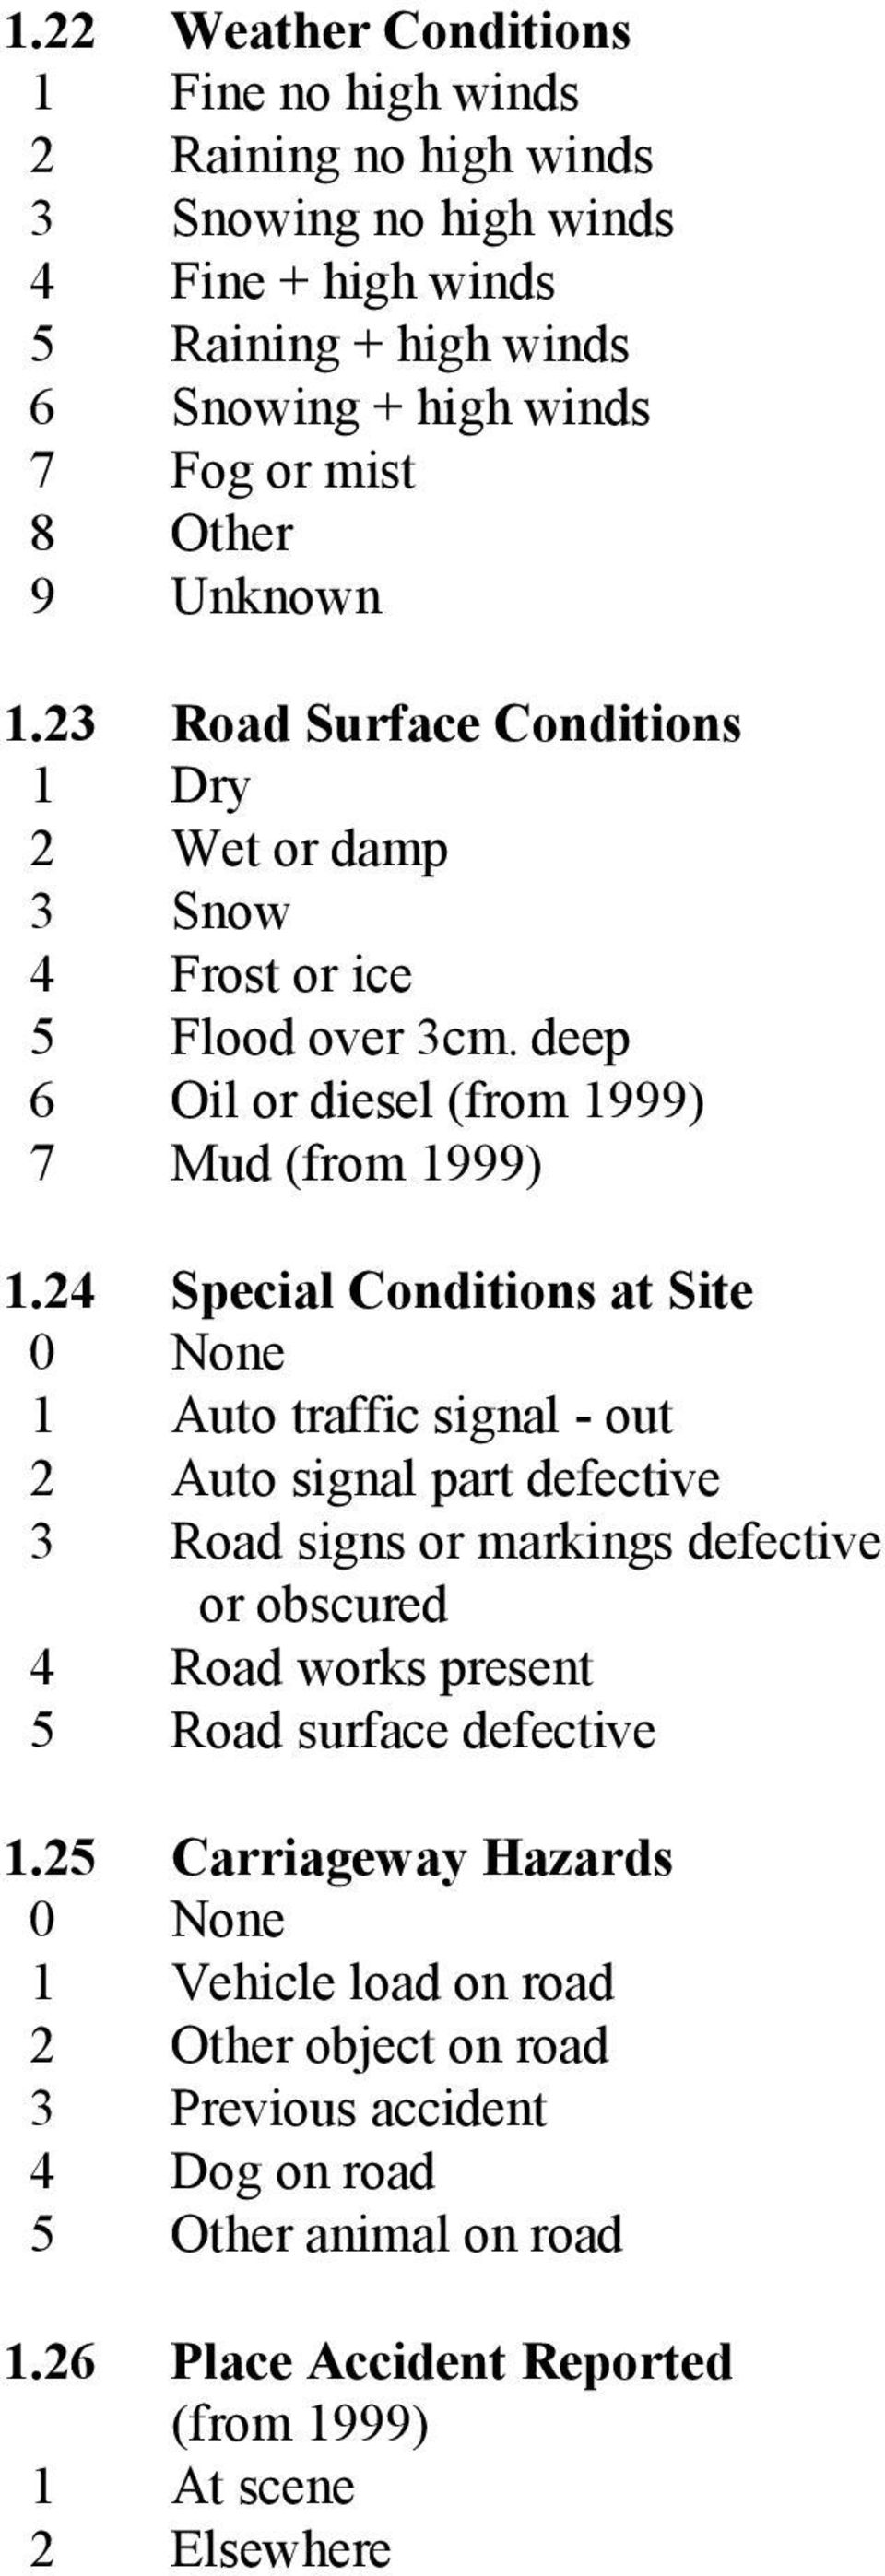 24 Special Conditions at Site 0 None 1 Auto traffic signal - out 2 Auto signal part defective 3 Road signs or markings defective or obscured 4 Road works present 5 Road surface